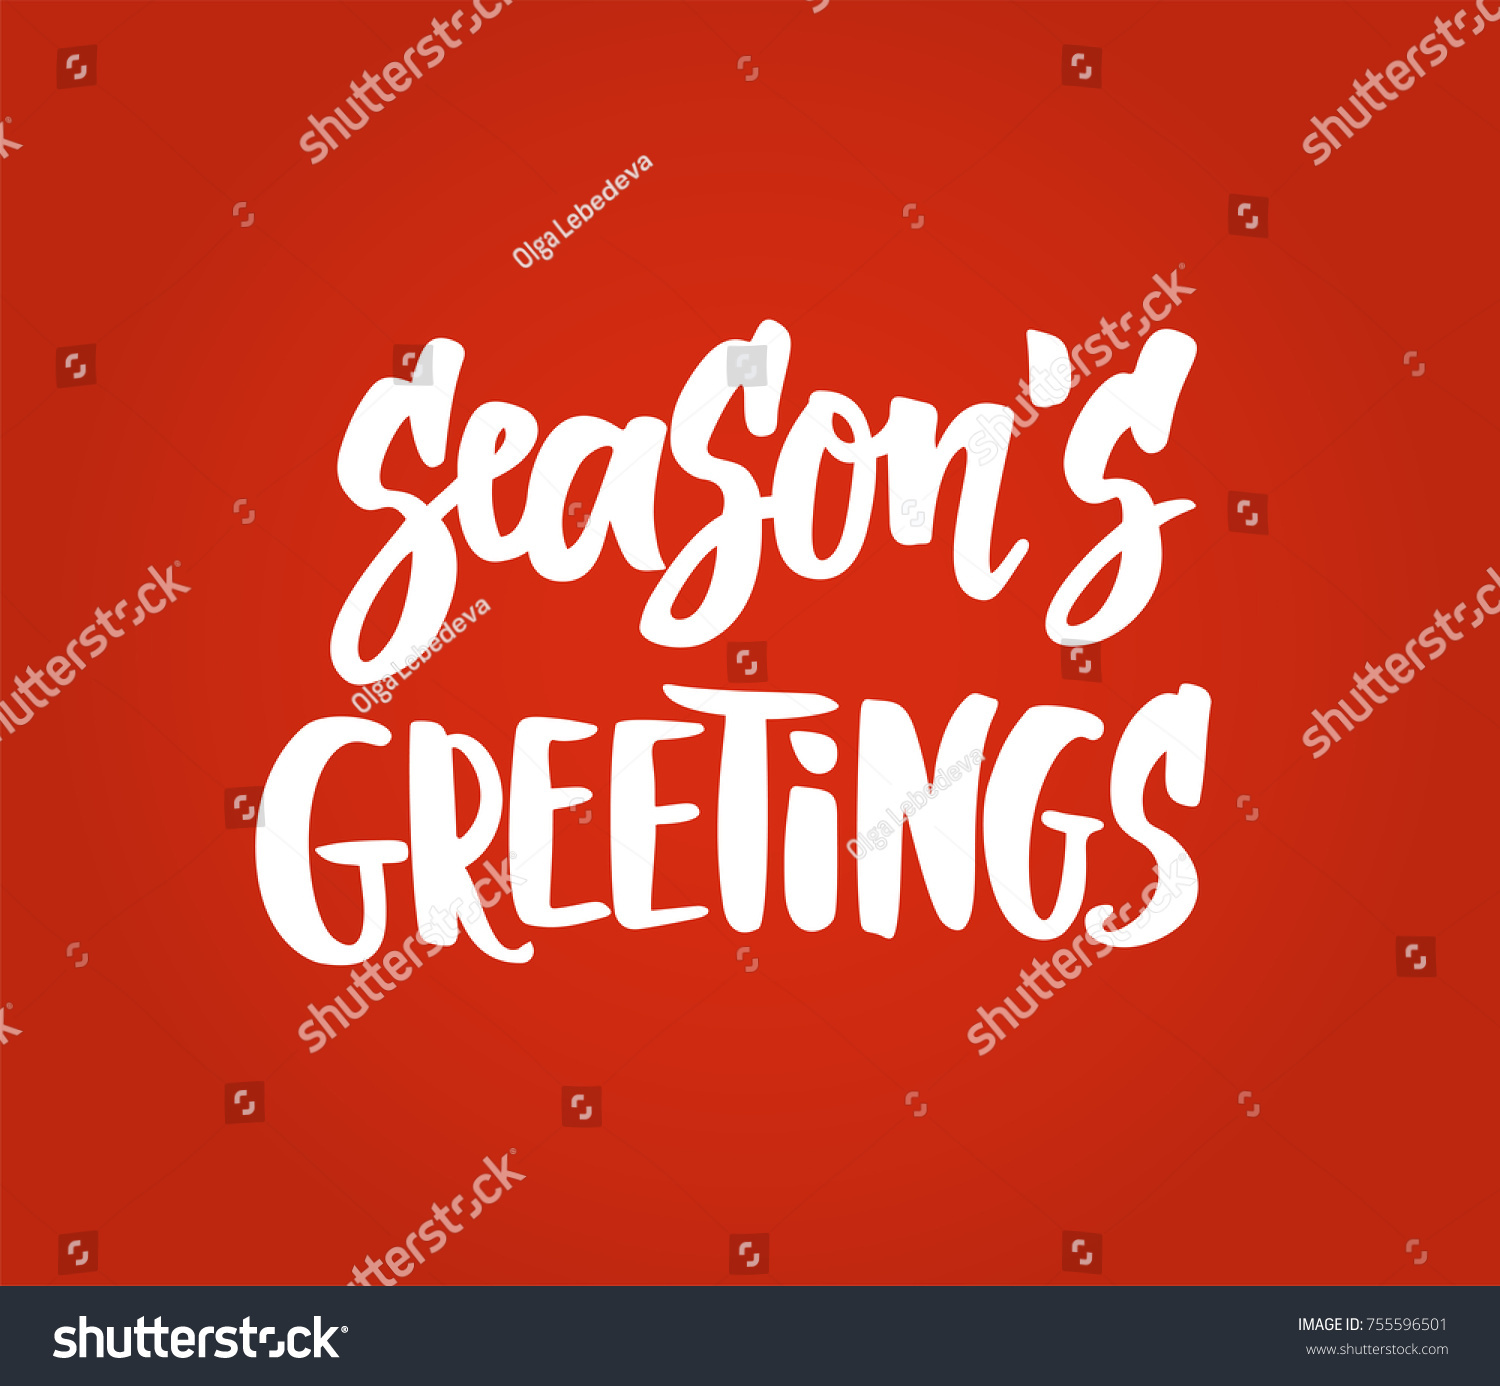 Christmas card seasons greetings text hand stock vector 755596501 christmas card with seasons greetings text hand drawn lettering holiday greeting quote on red m4hsunfo